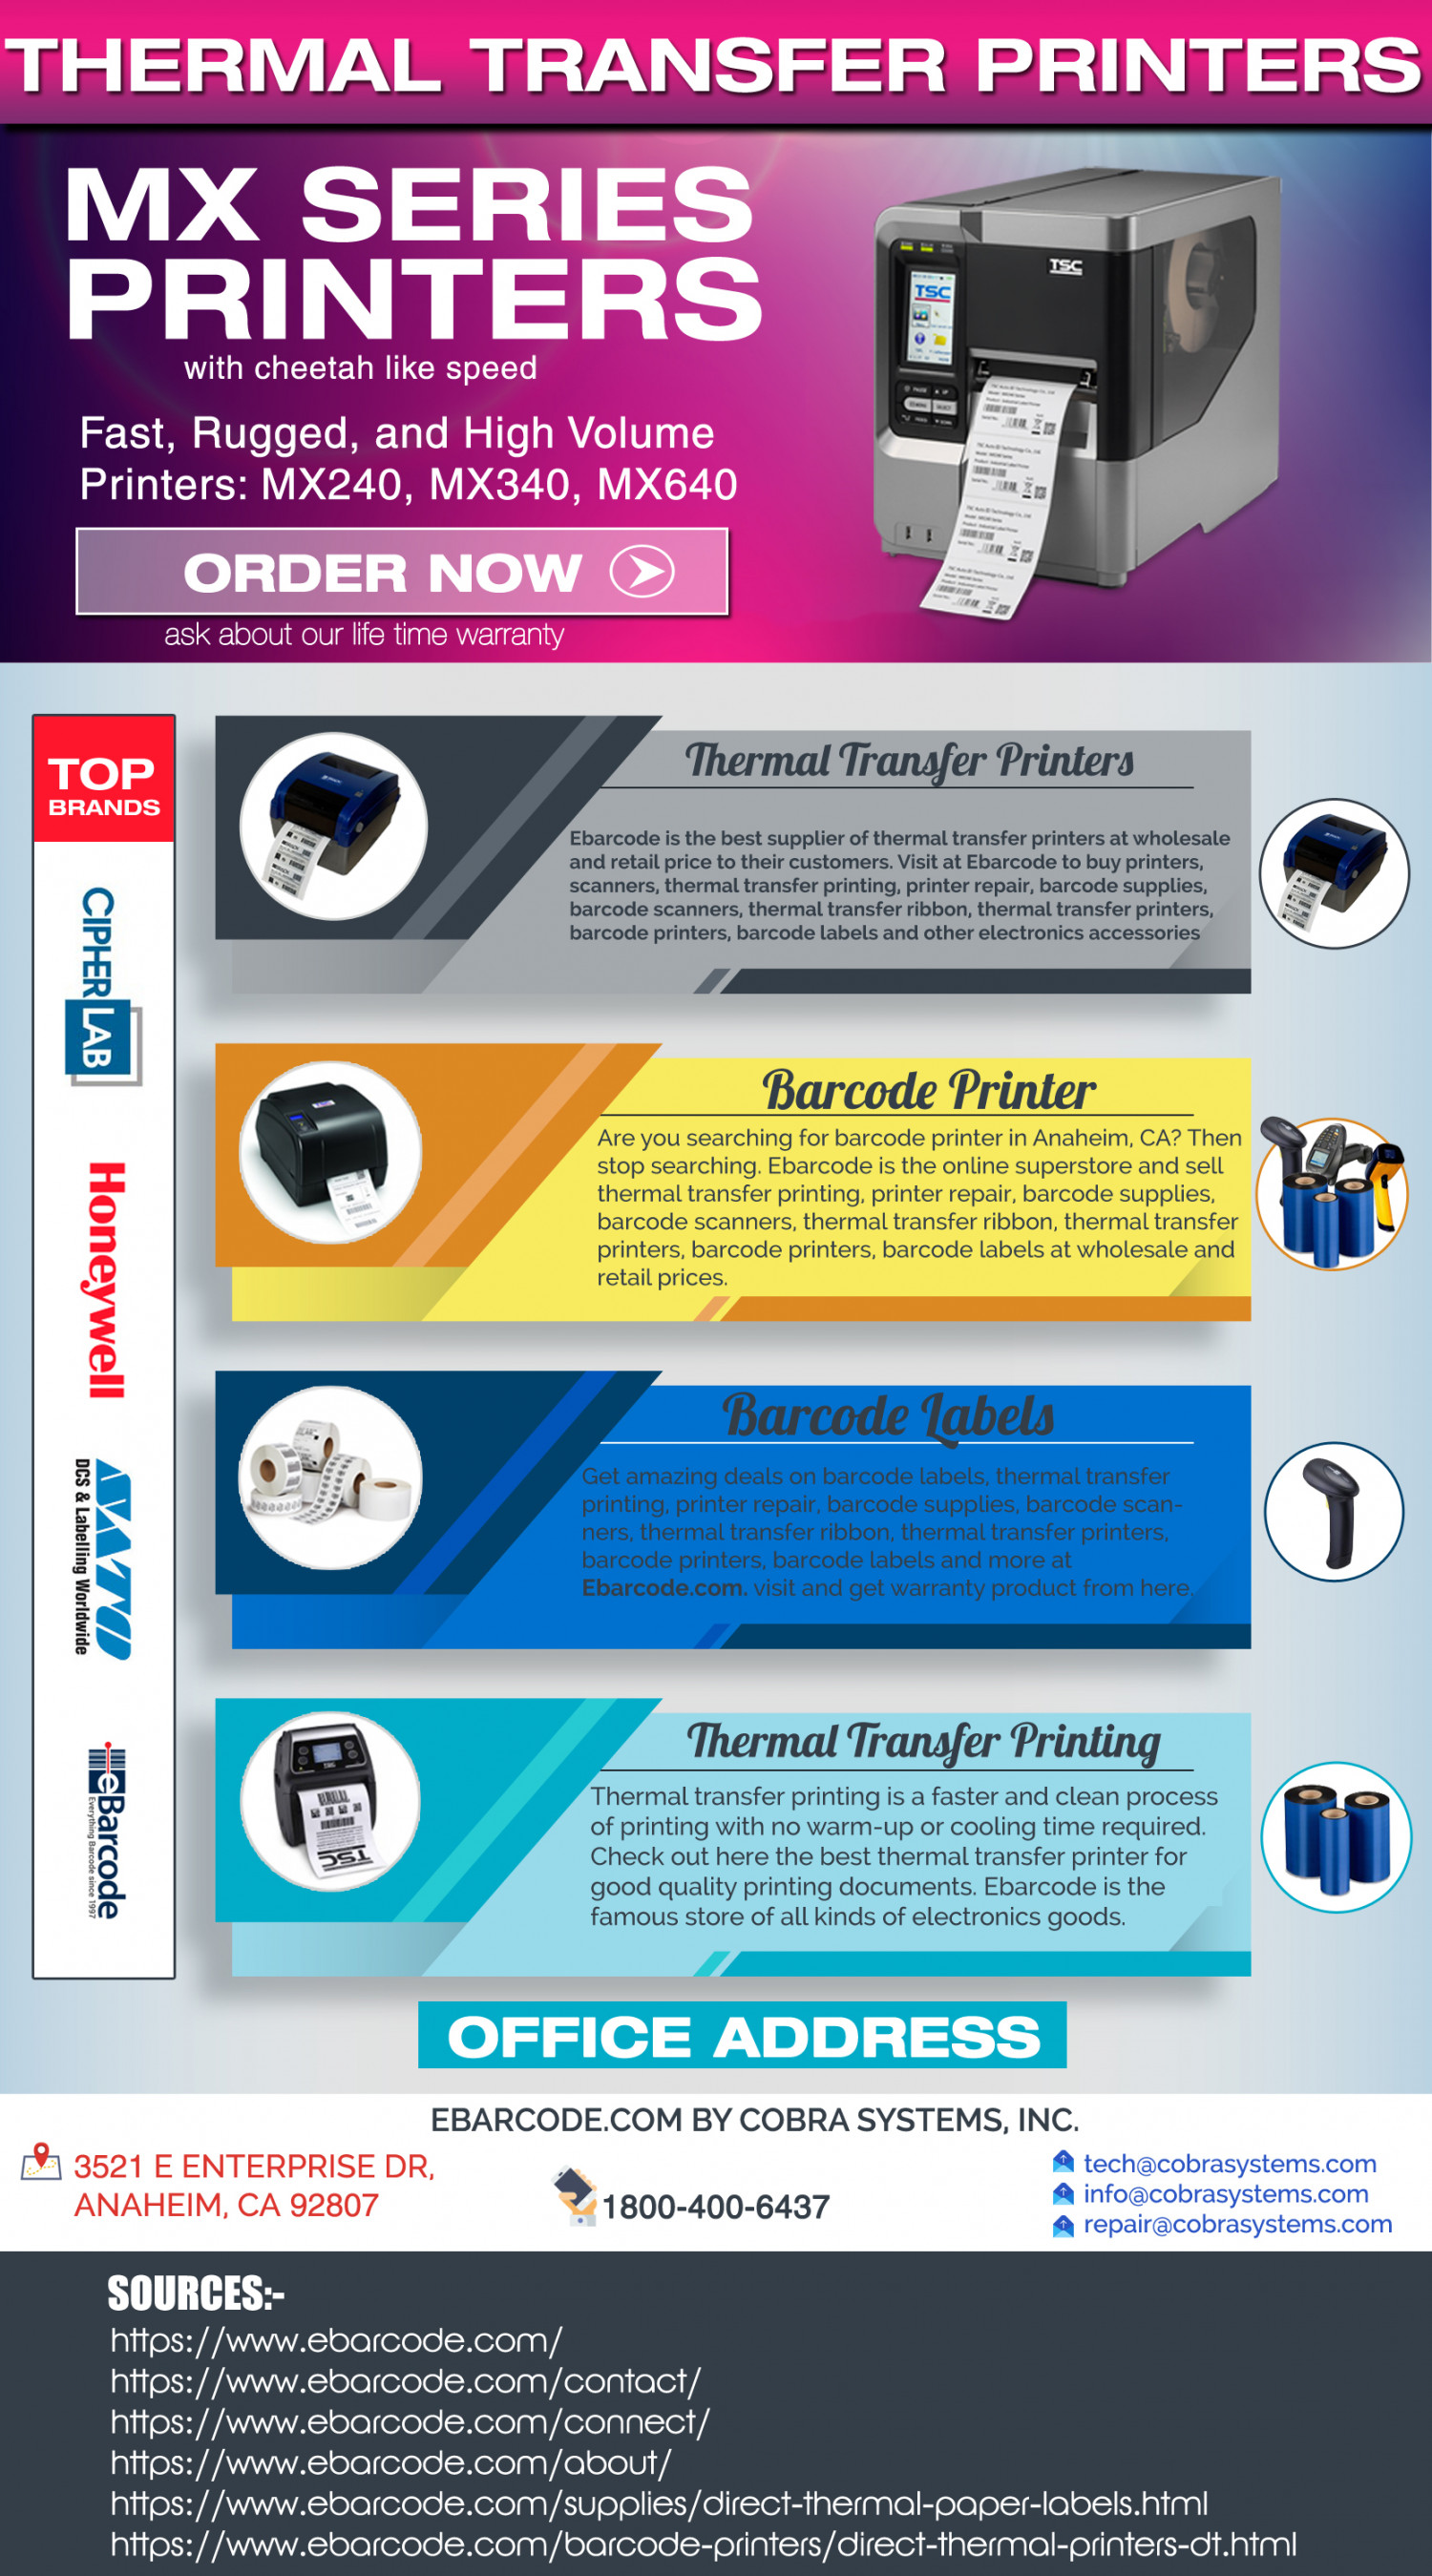 Barcode Printers Infographic